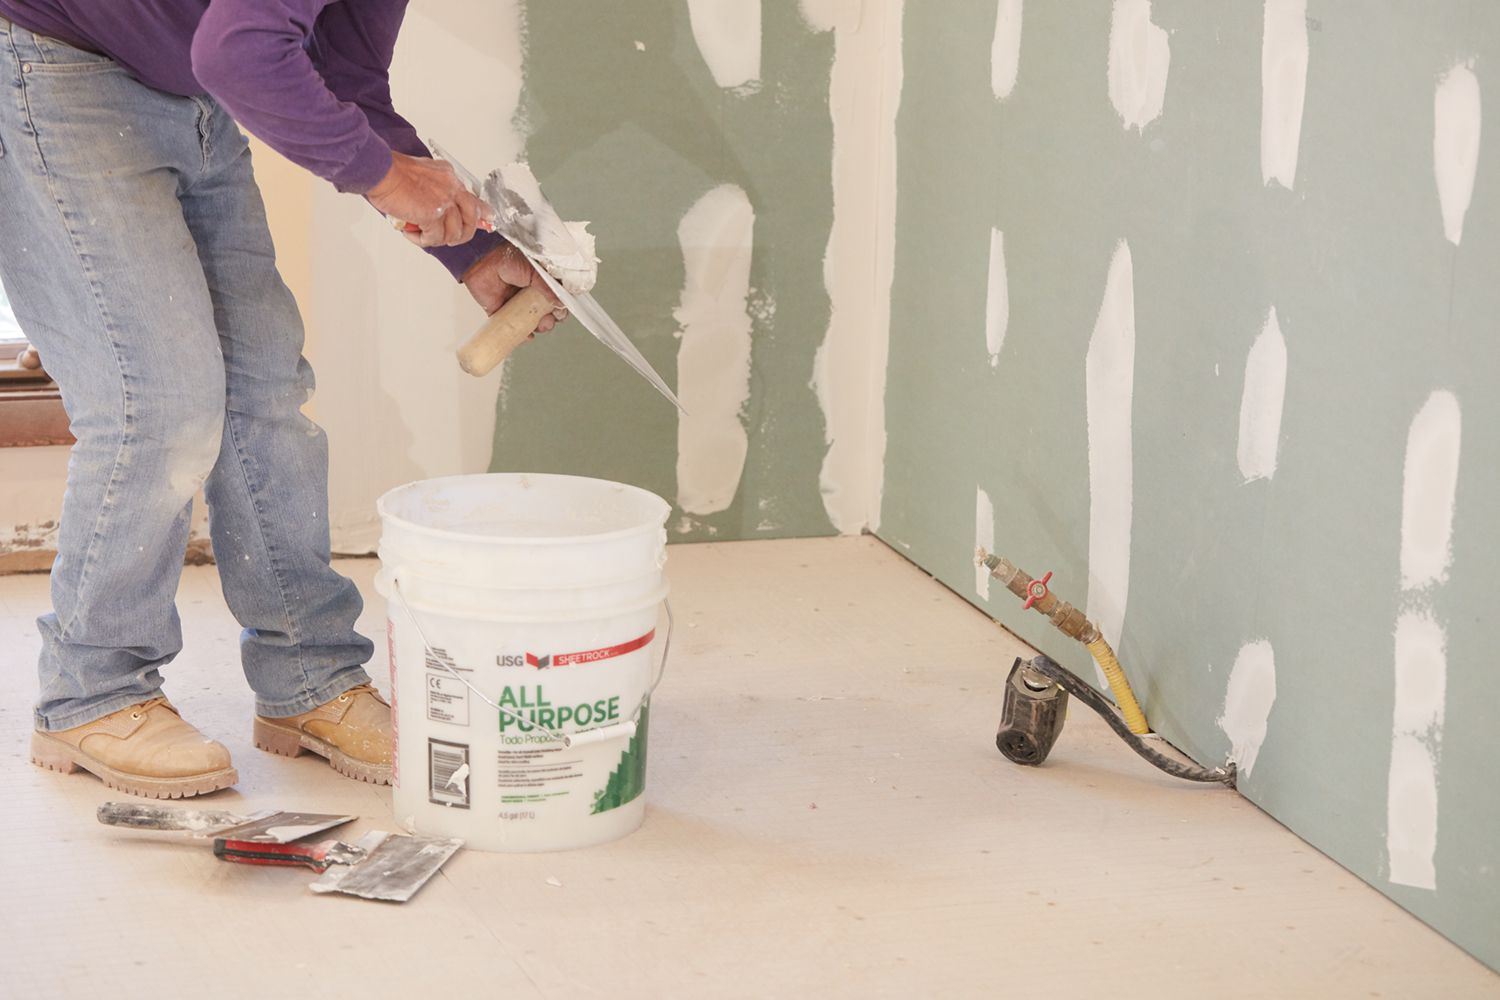 Plaster spots on wall with contractor adding more near white bucket